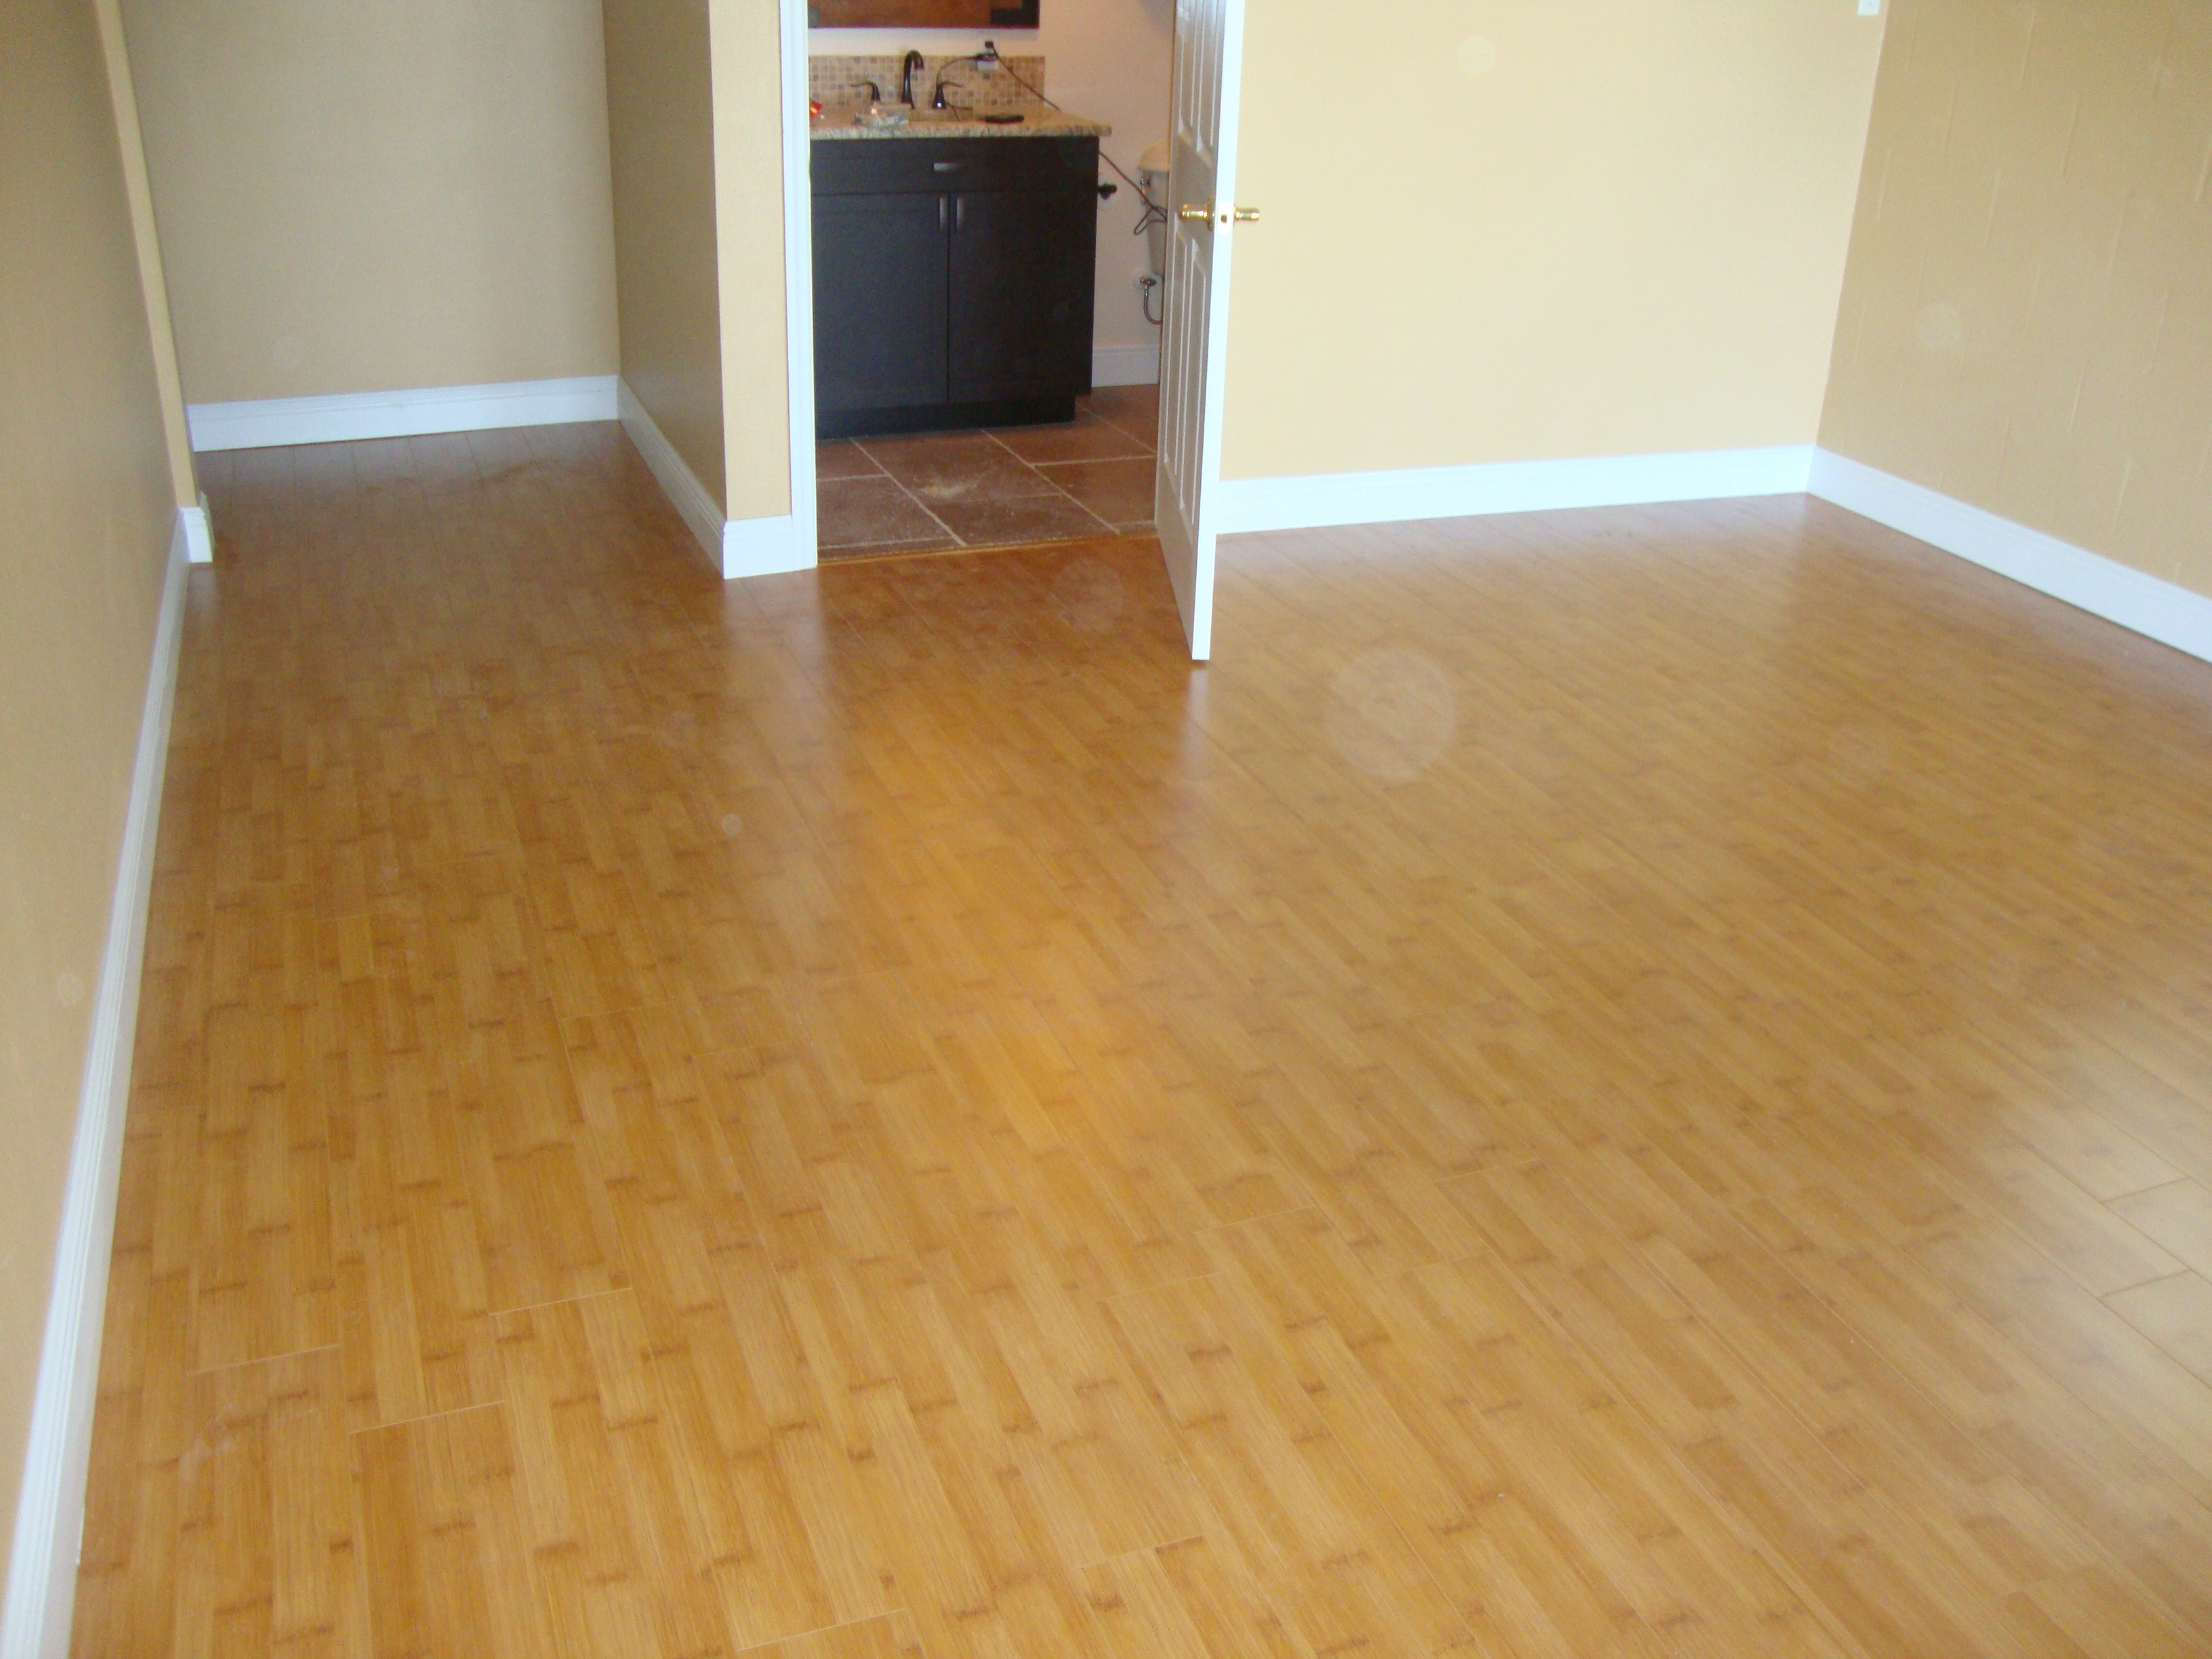 Bamboo Flooring Vs Wood Laminate